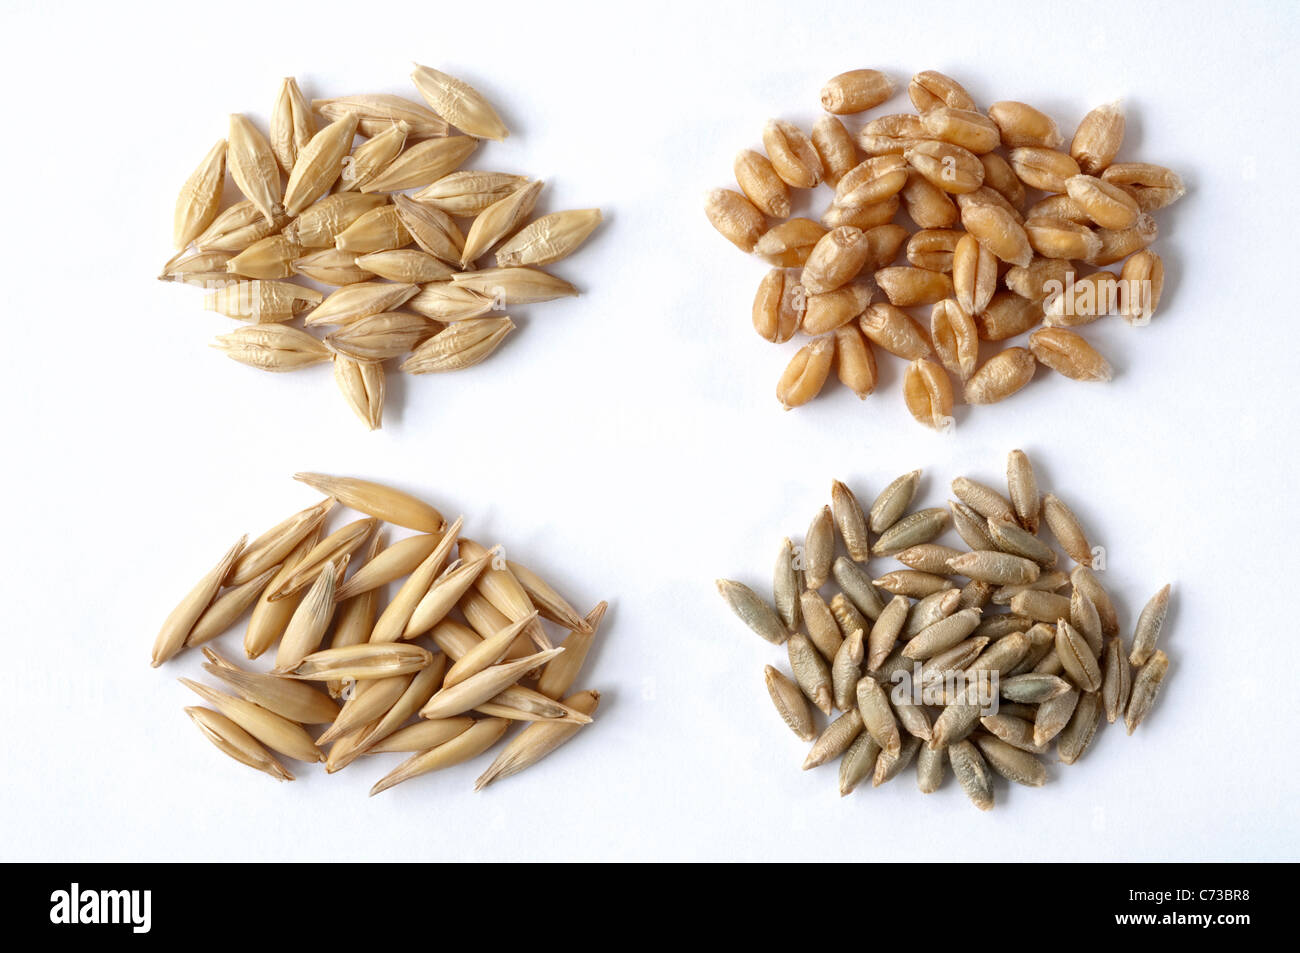 Various cereals: Barley (Hordeum distichon), Oats (Avena sativa), Wheat (Triticum aestivum) and Rye (Secale cereale). Stock Photo